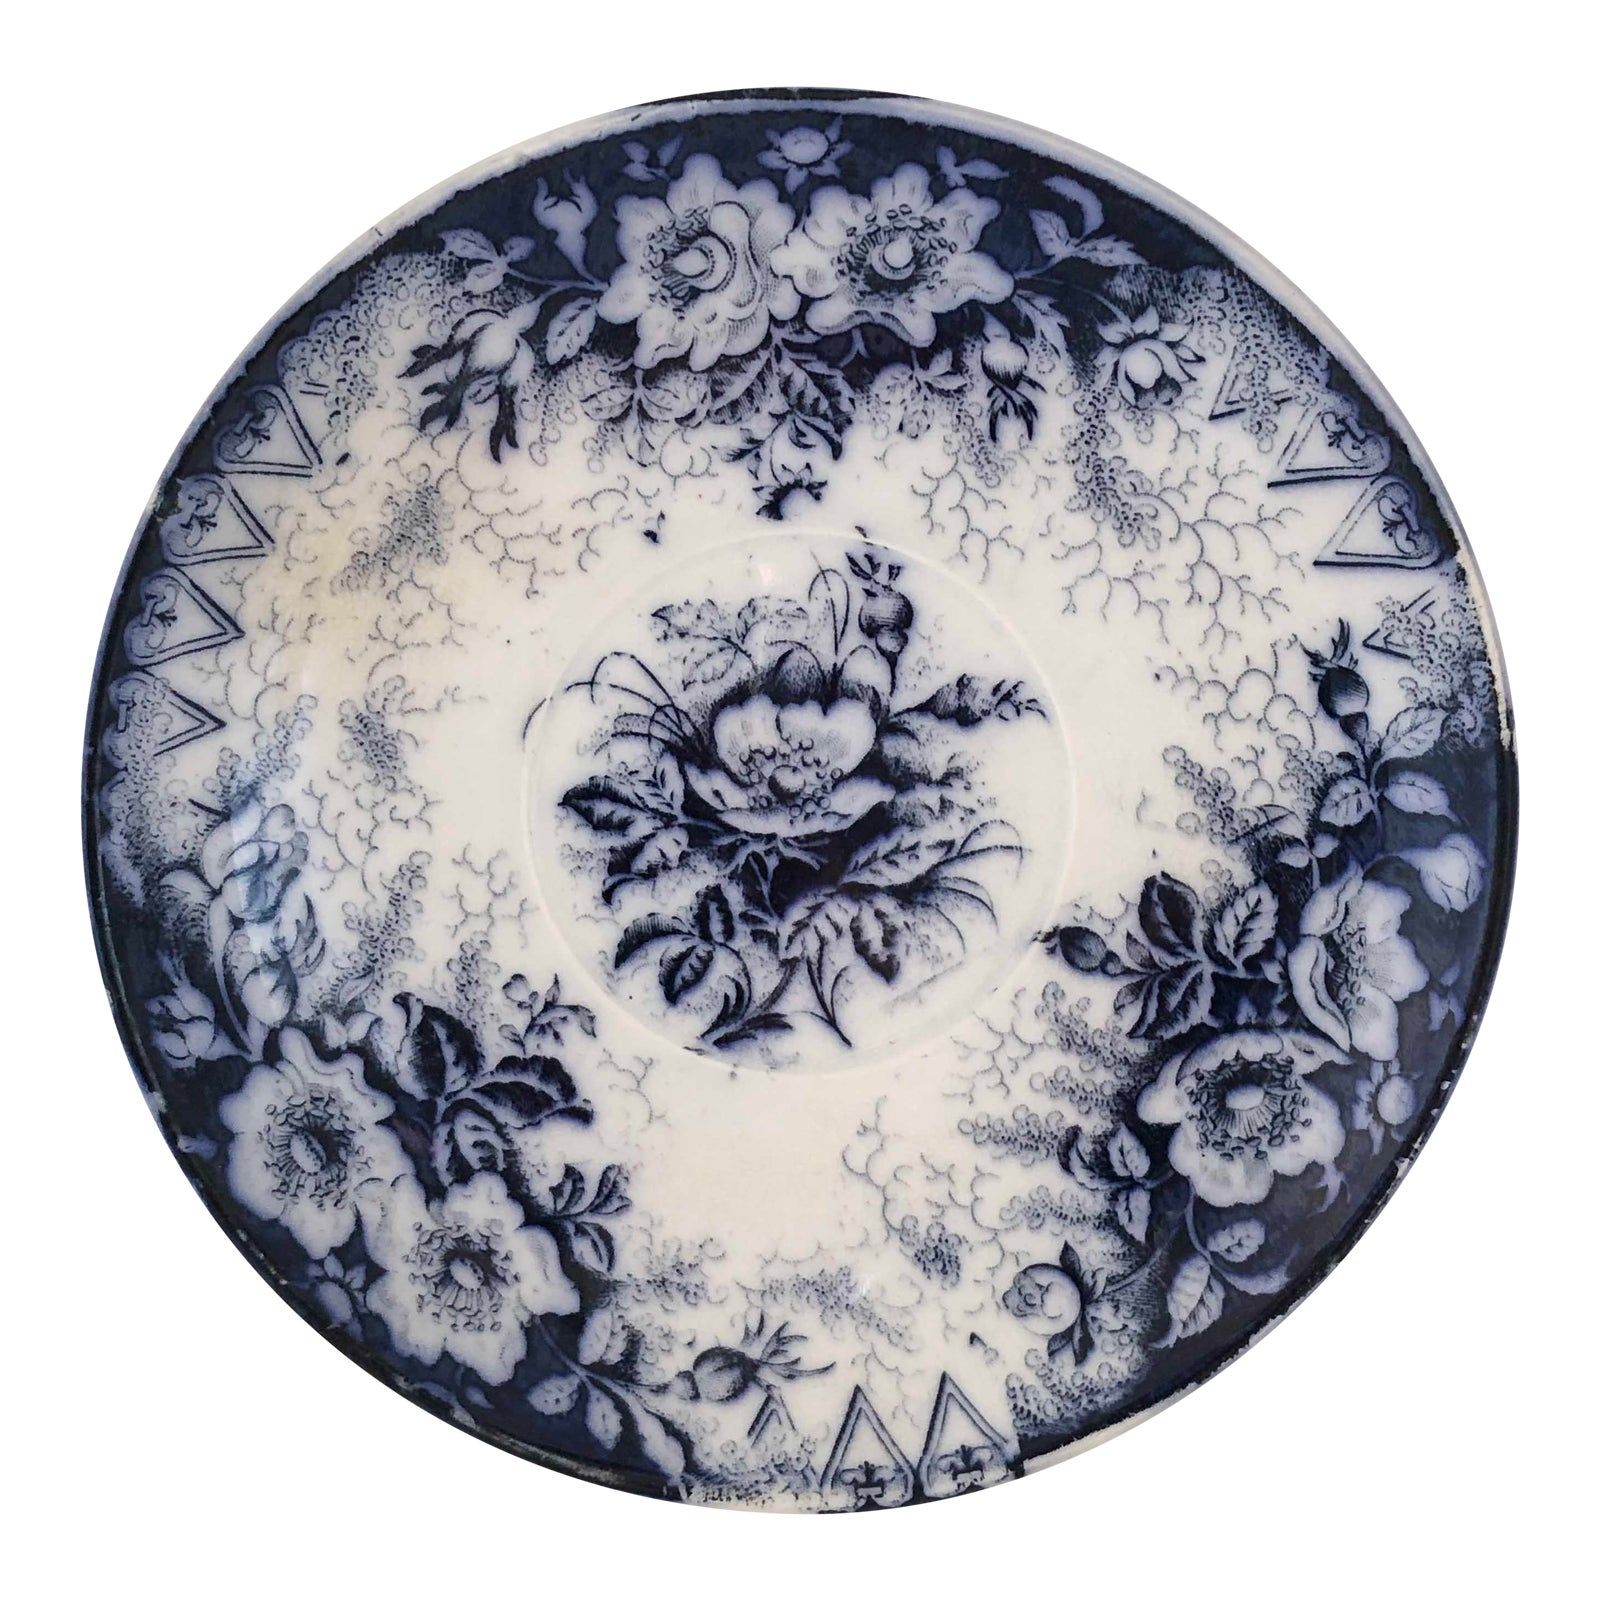 Pin On Blue And White Decor